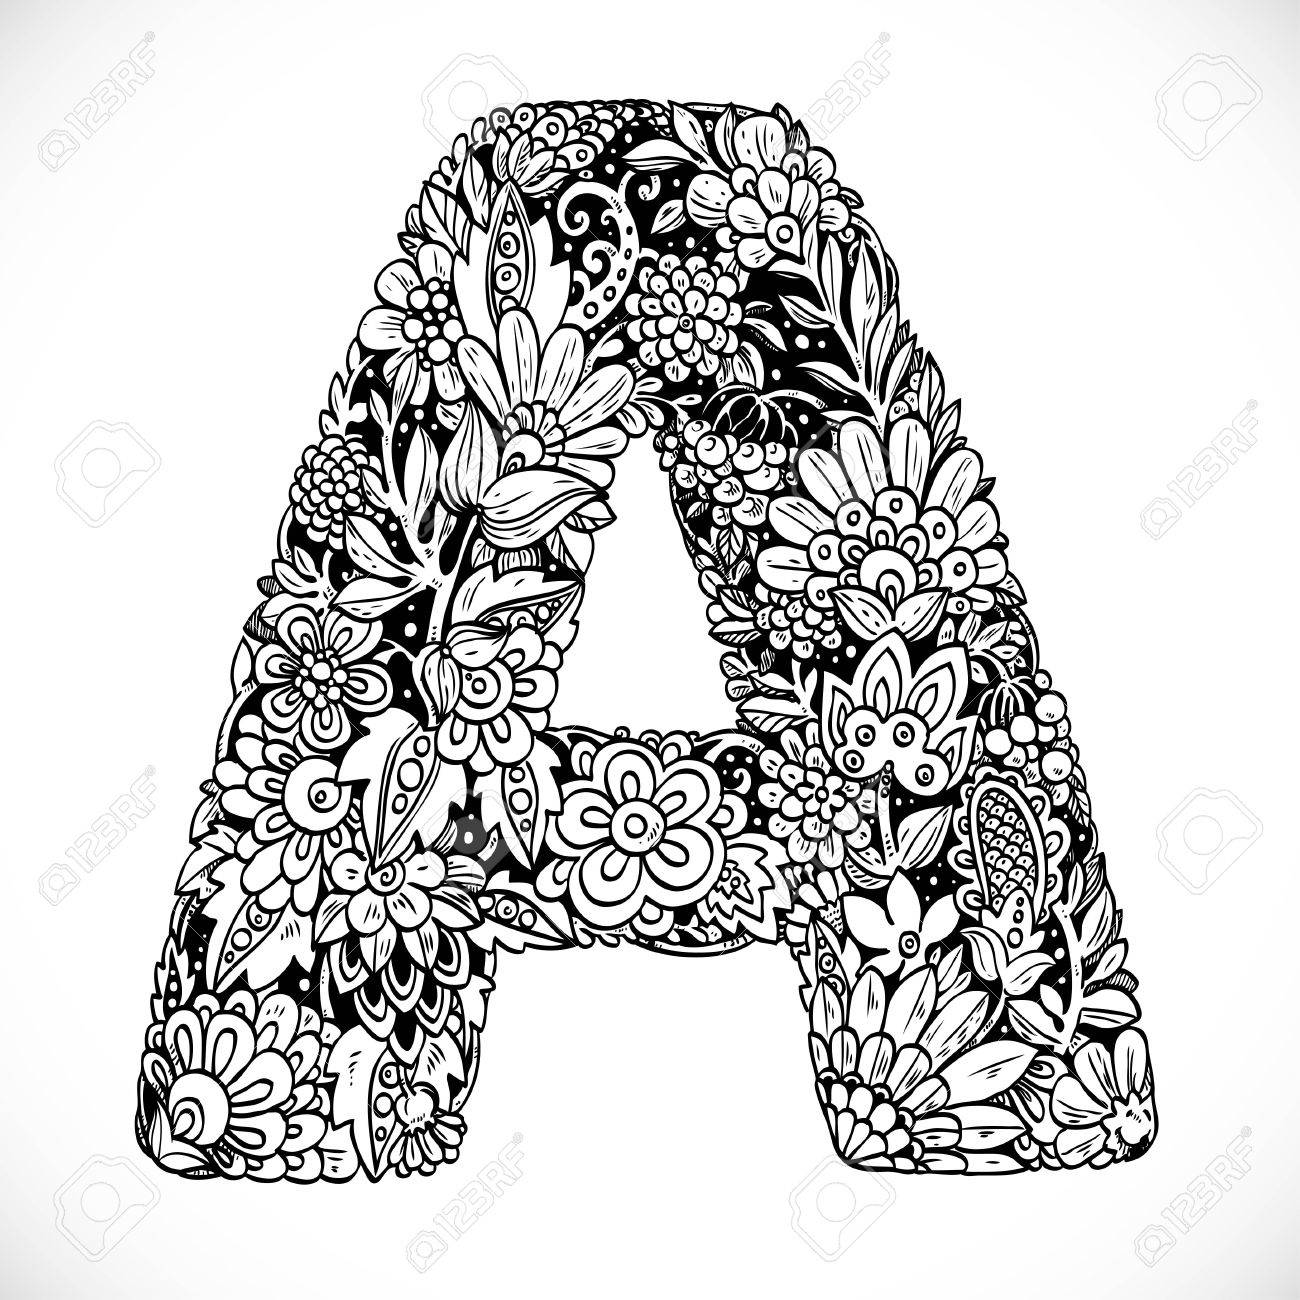 Doodles font from ornamental flowers letter a black and white doodles font from ornamental flowers letter a black and white stock vector 52156691 thecheapjerseys